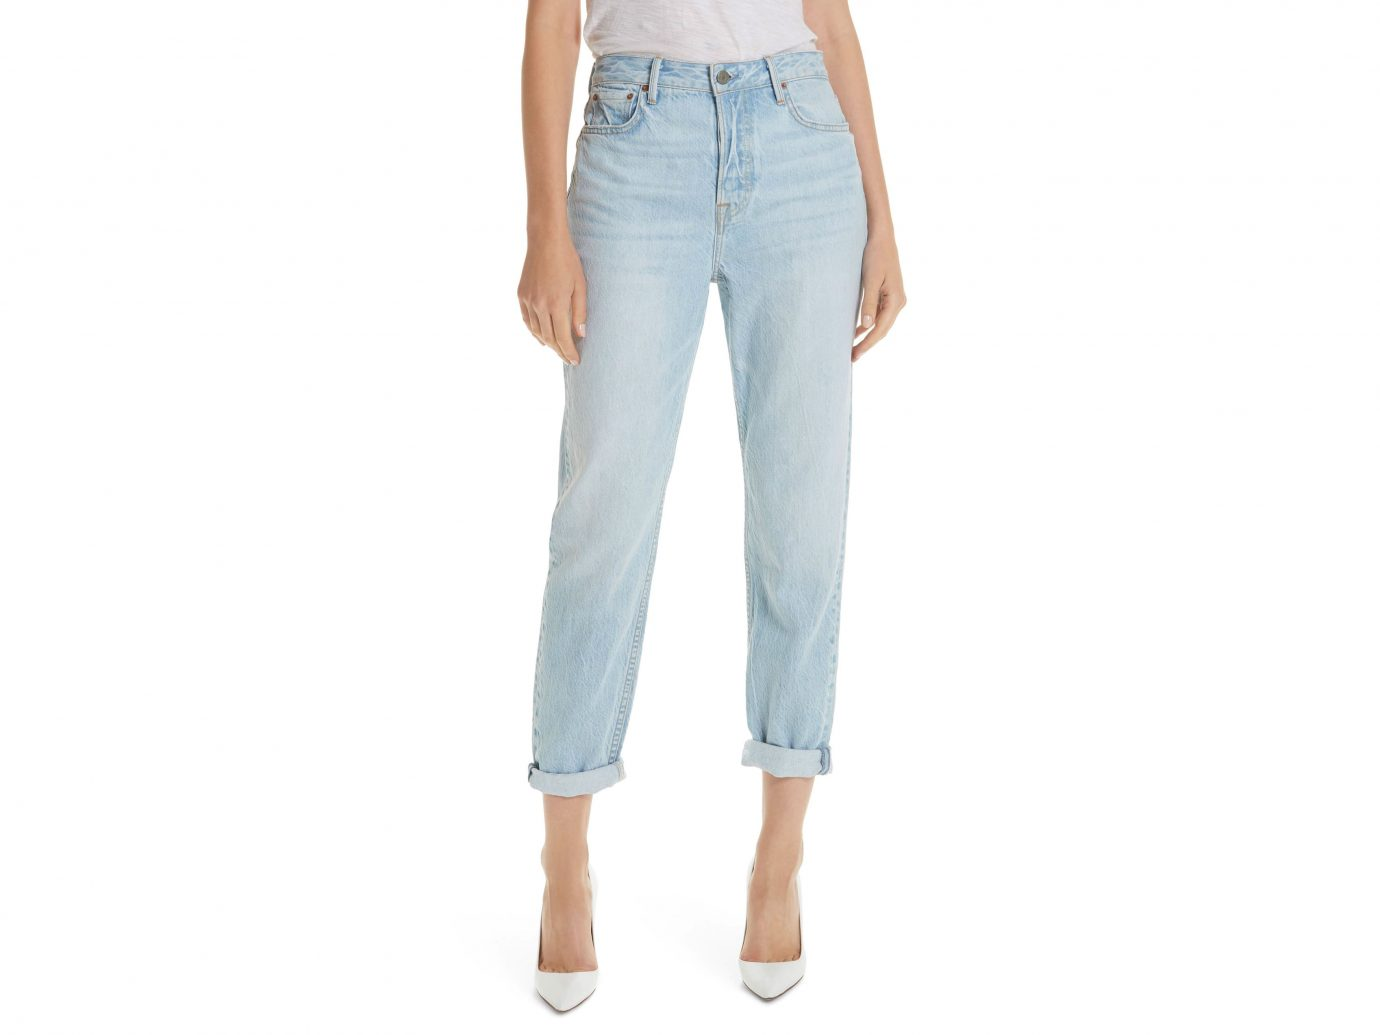 light-wash denim for summer—we love GRLFRND's cuffed boyfriend jeans